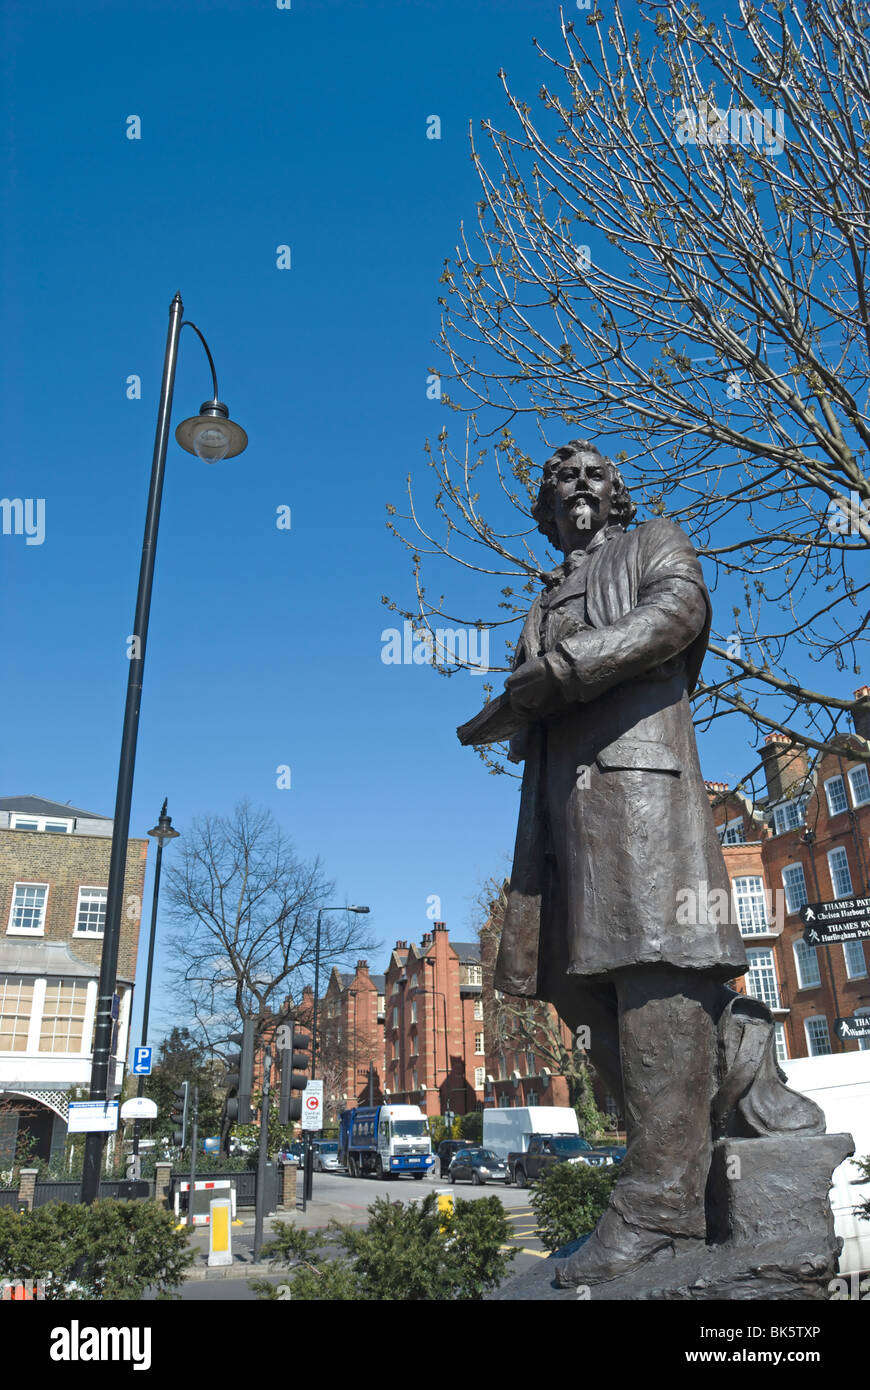 statue of artist james mcneill whistler, by sculptor nicholas dimbleby, in chelsea, london, england - Stock Image